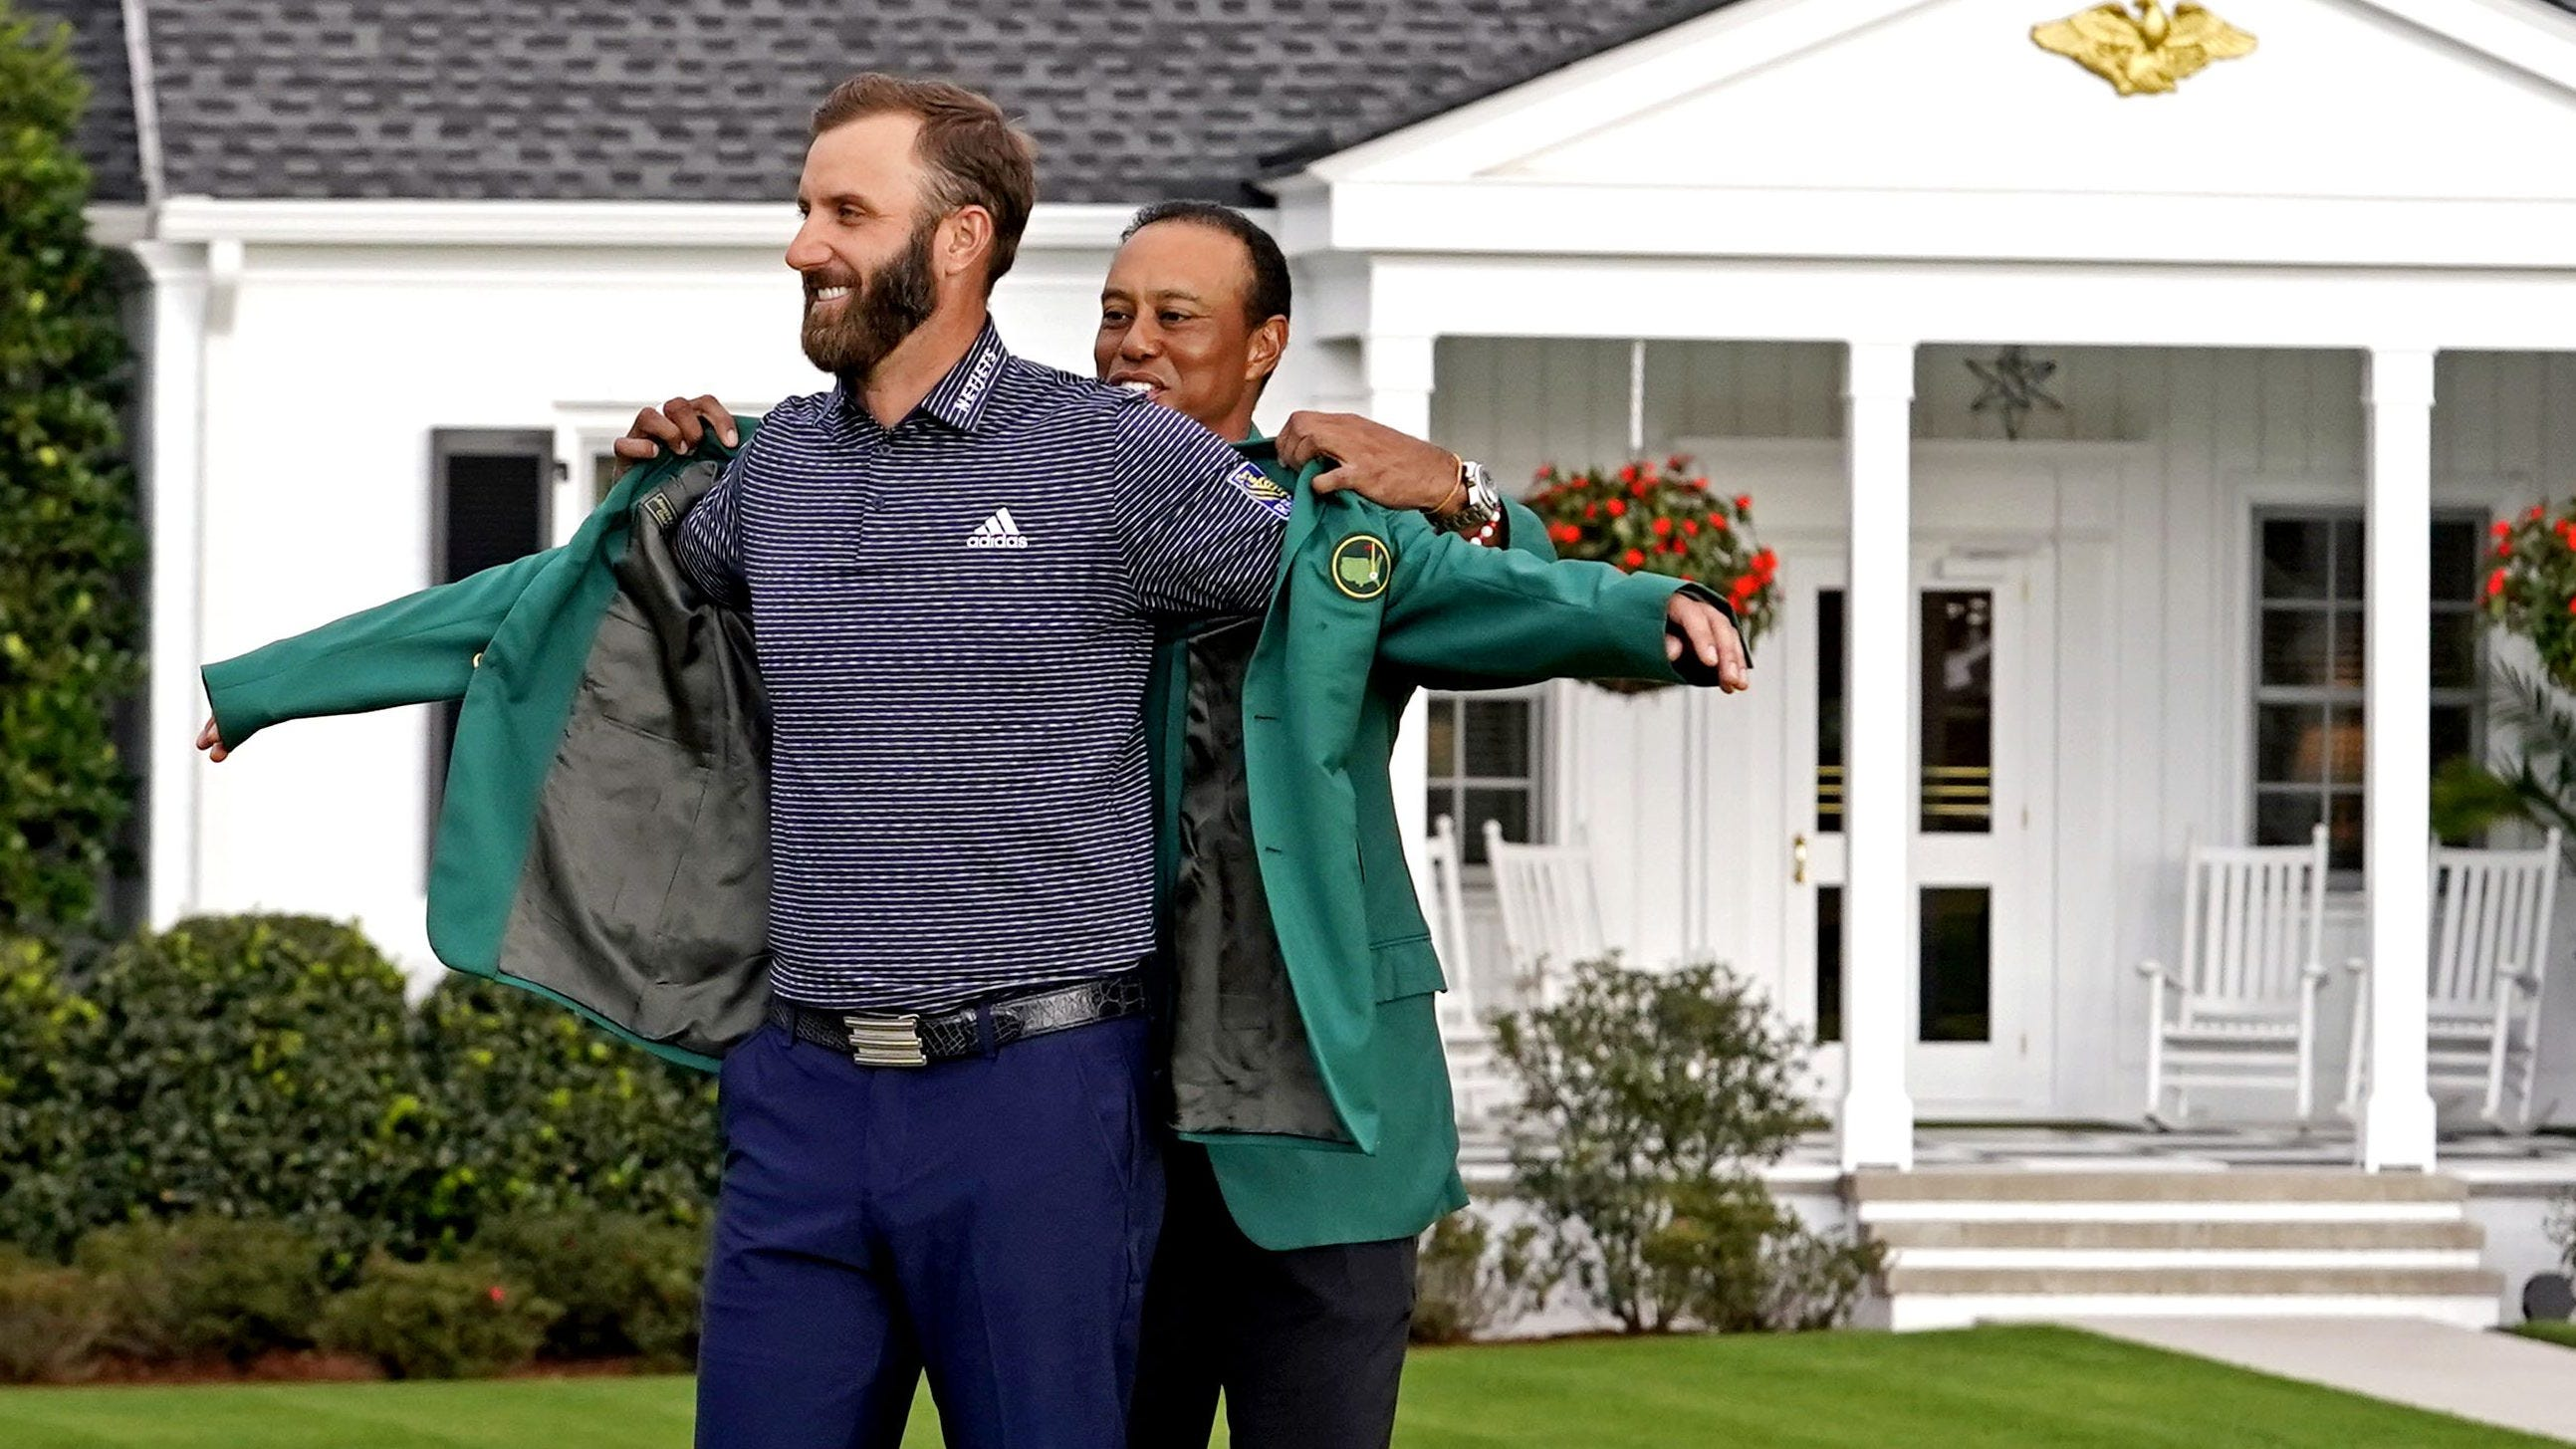 The masters 2021 betting odds sports betting nj legal